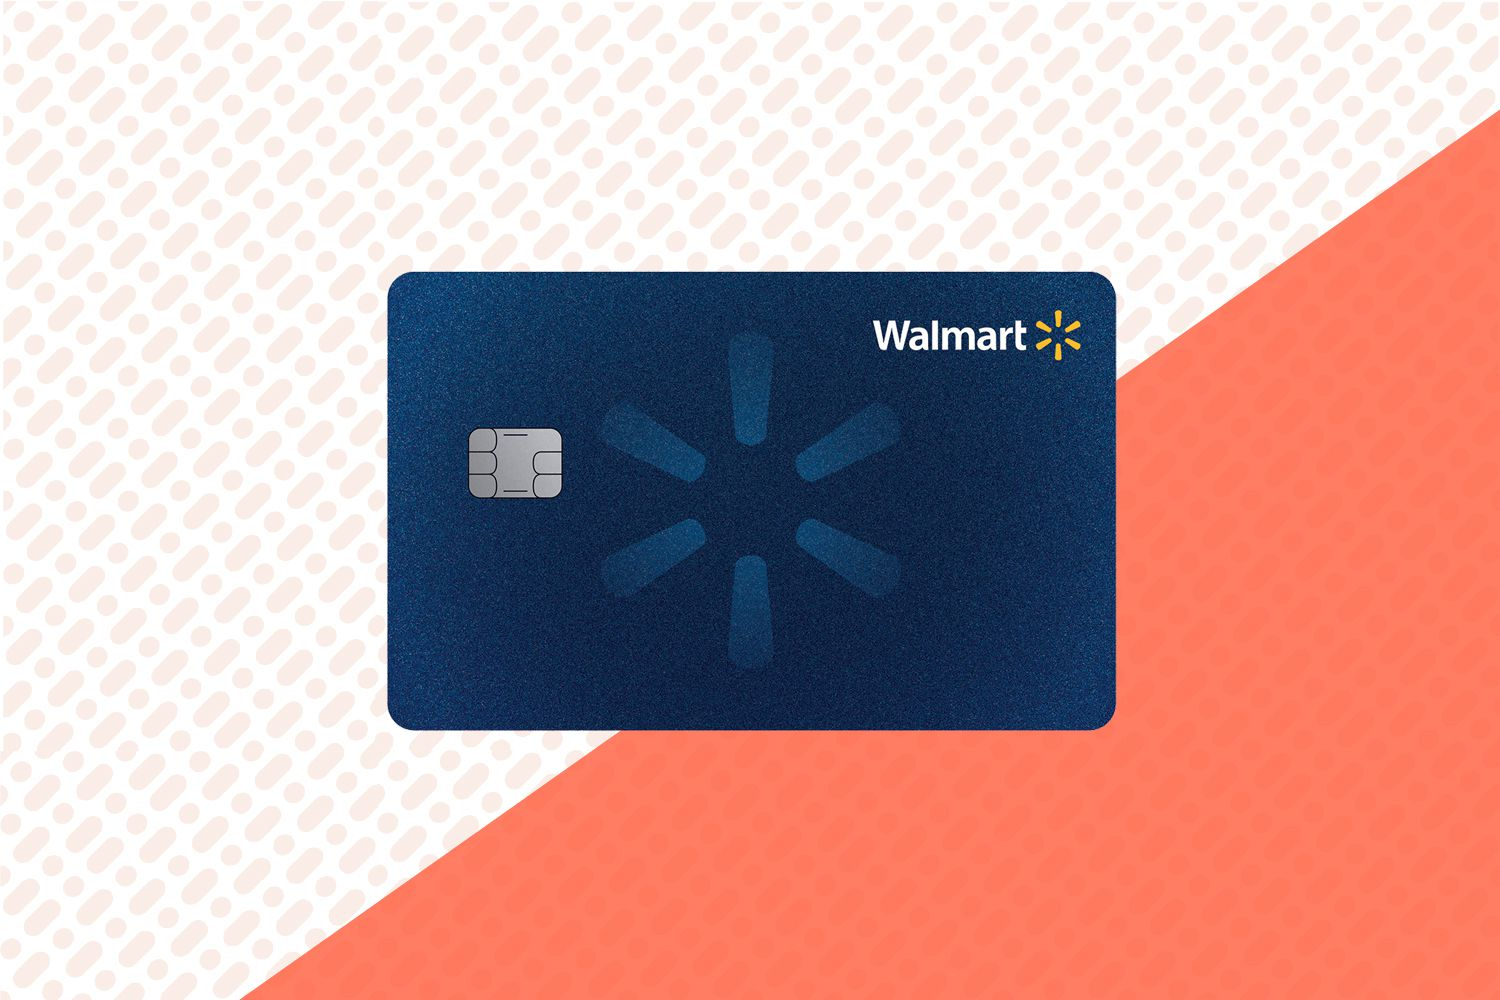 Walmart Rewards Card Review Good For Regular Shoppers